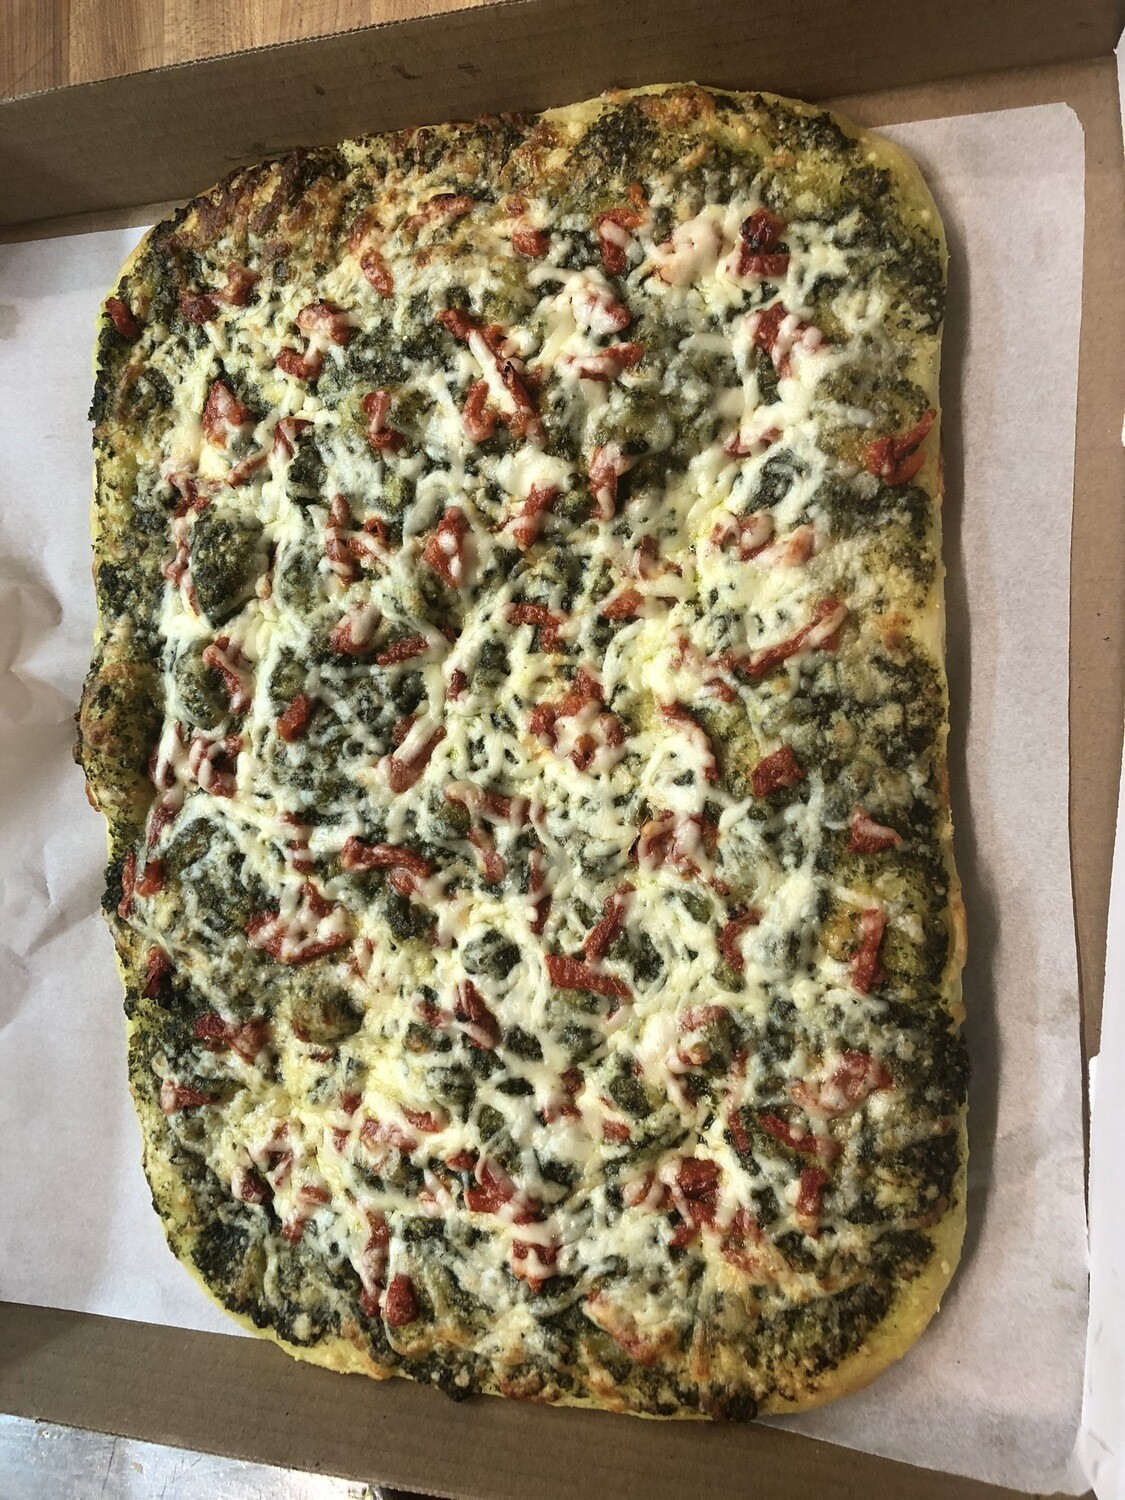 Home Made Pesto Focaccia (Roman Style Whole Pizza)